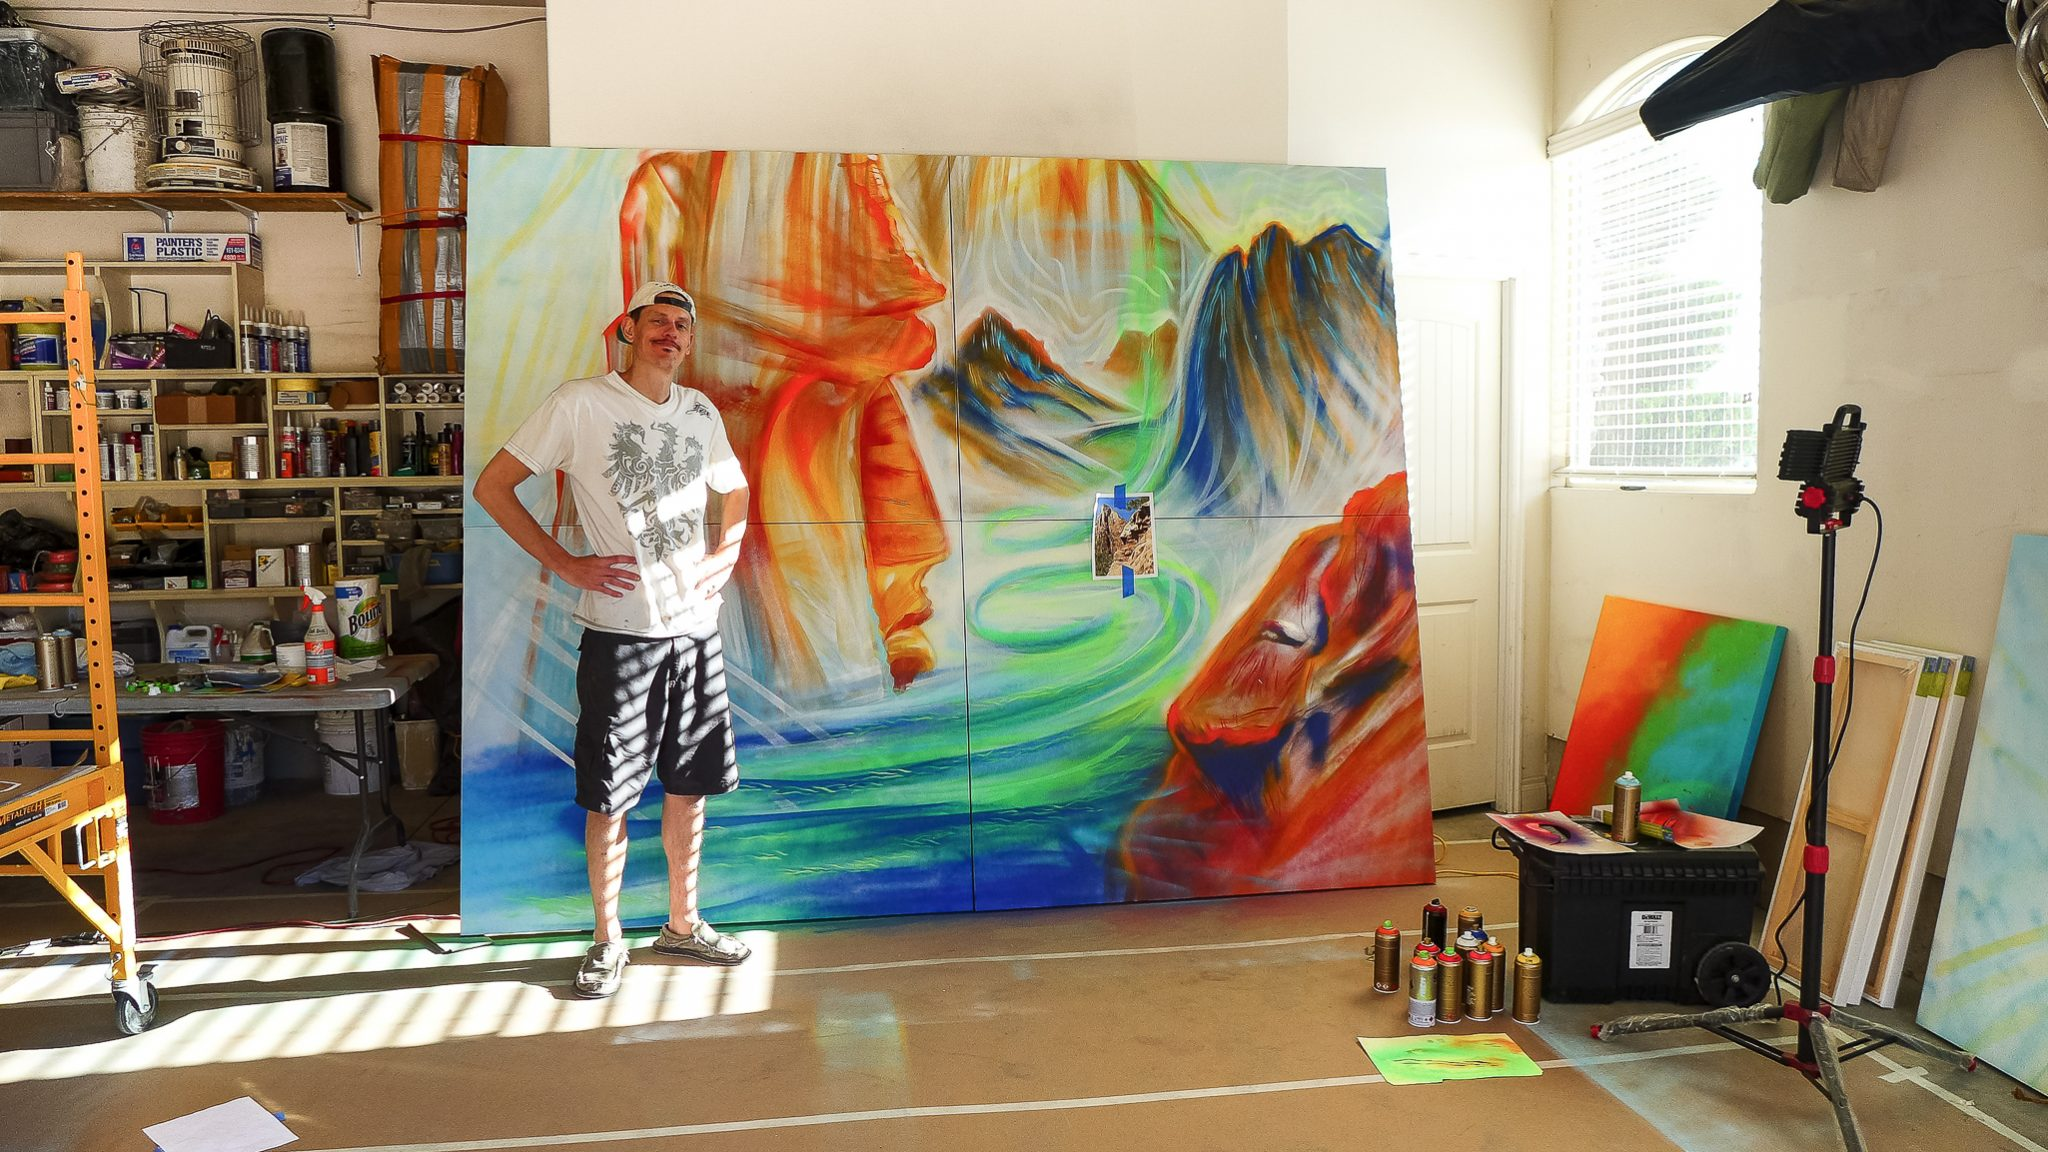 artist mike bowen in front of large painting